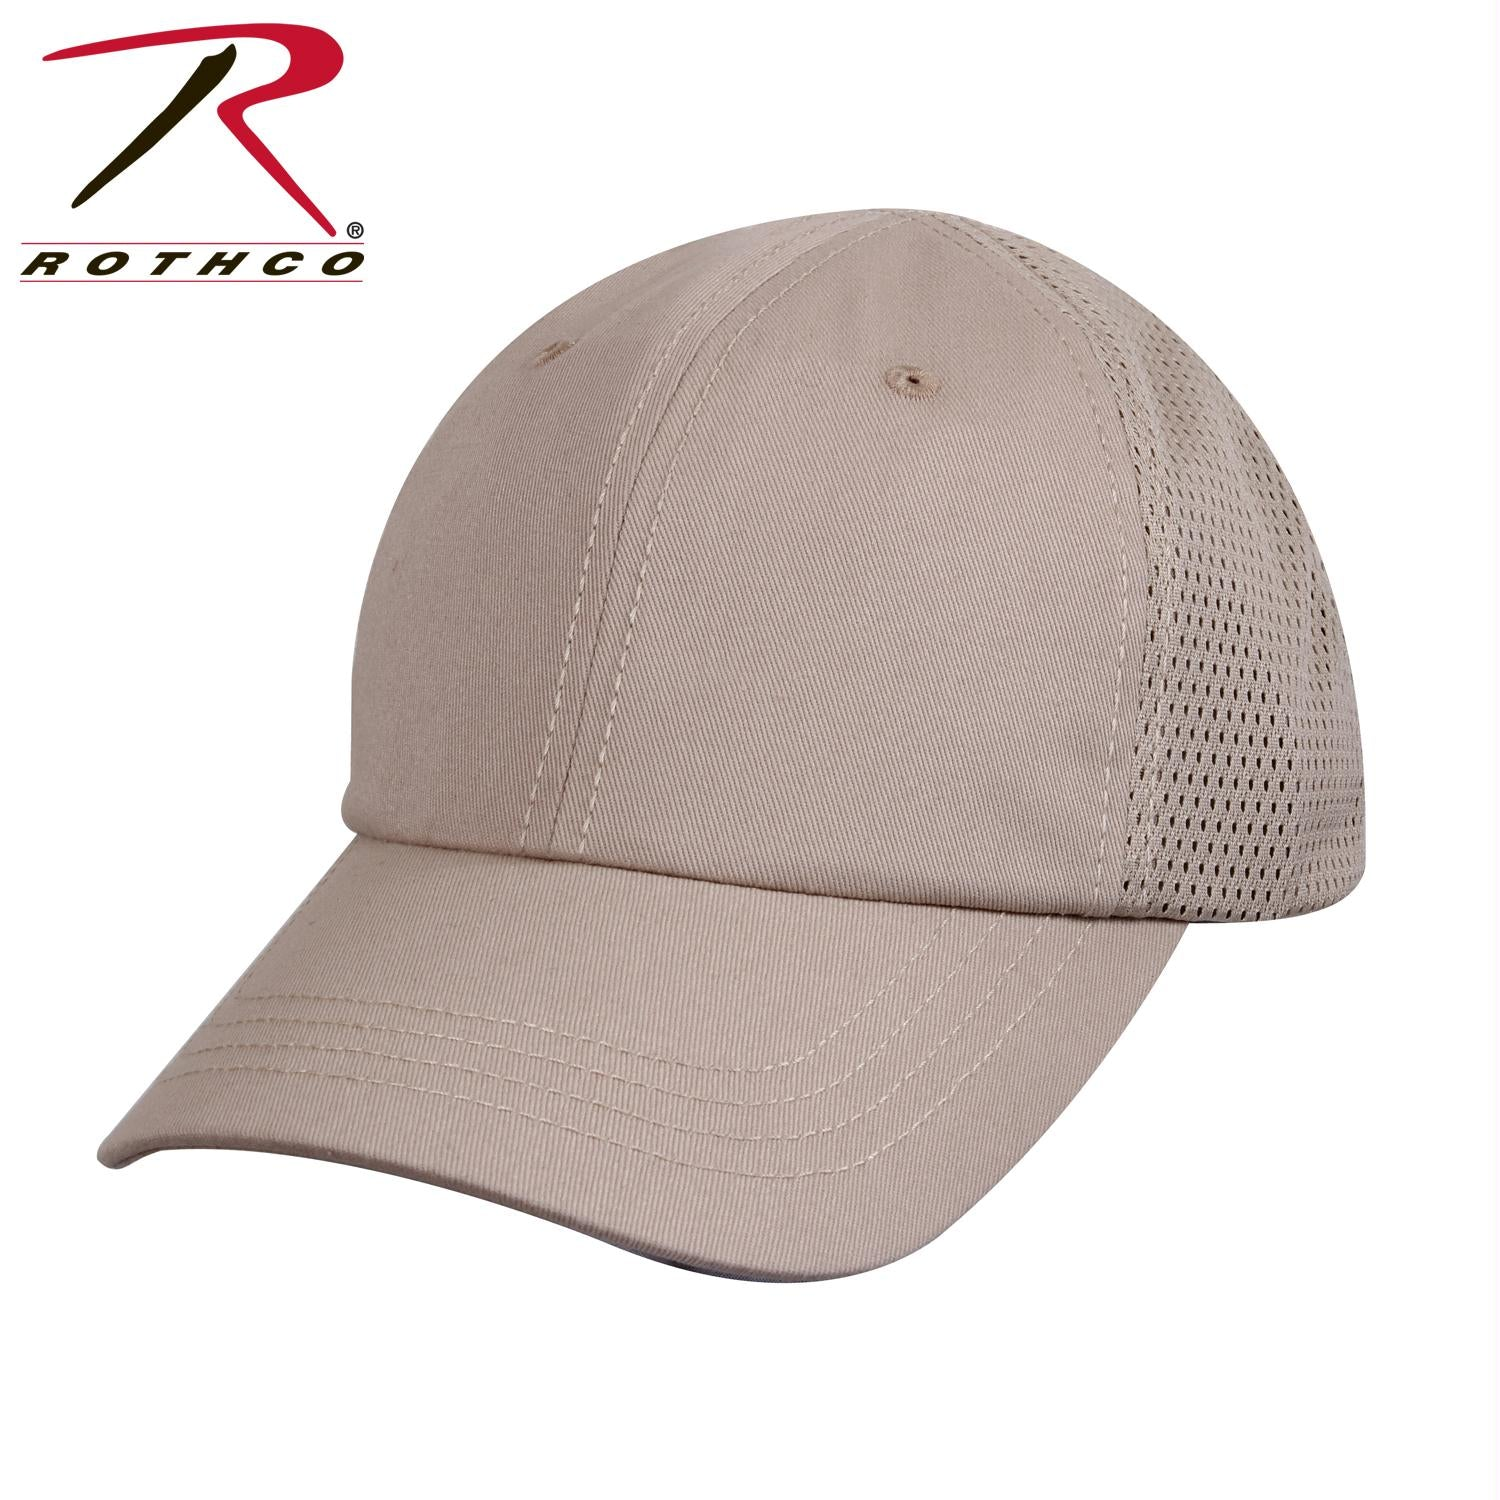 Rothco Mesh Back Tactical Cap - Khaki / One Size